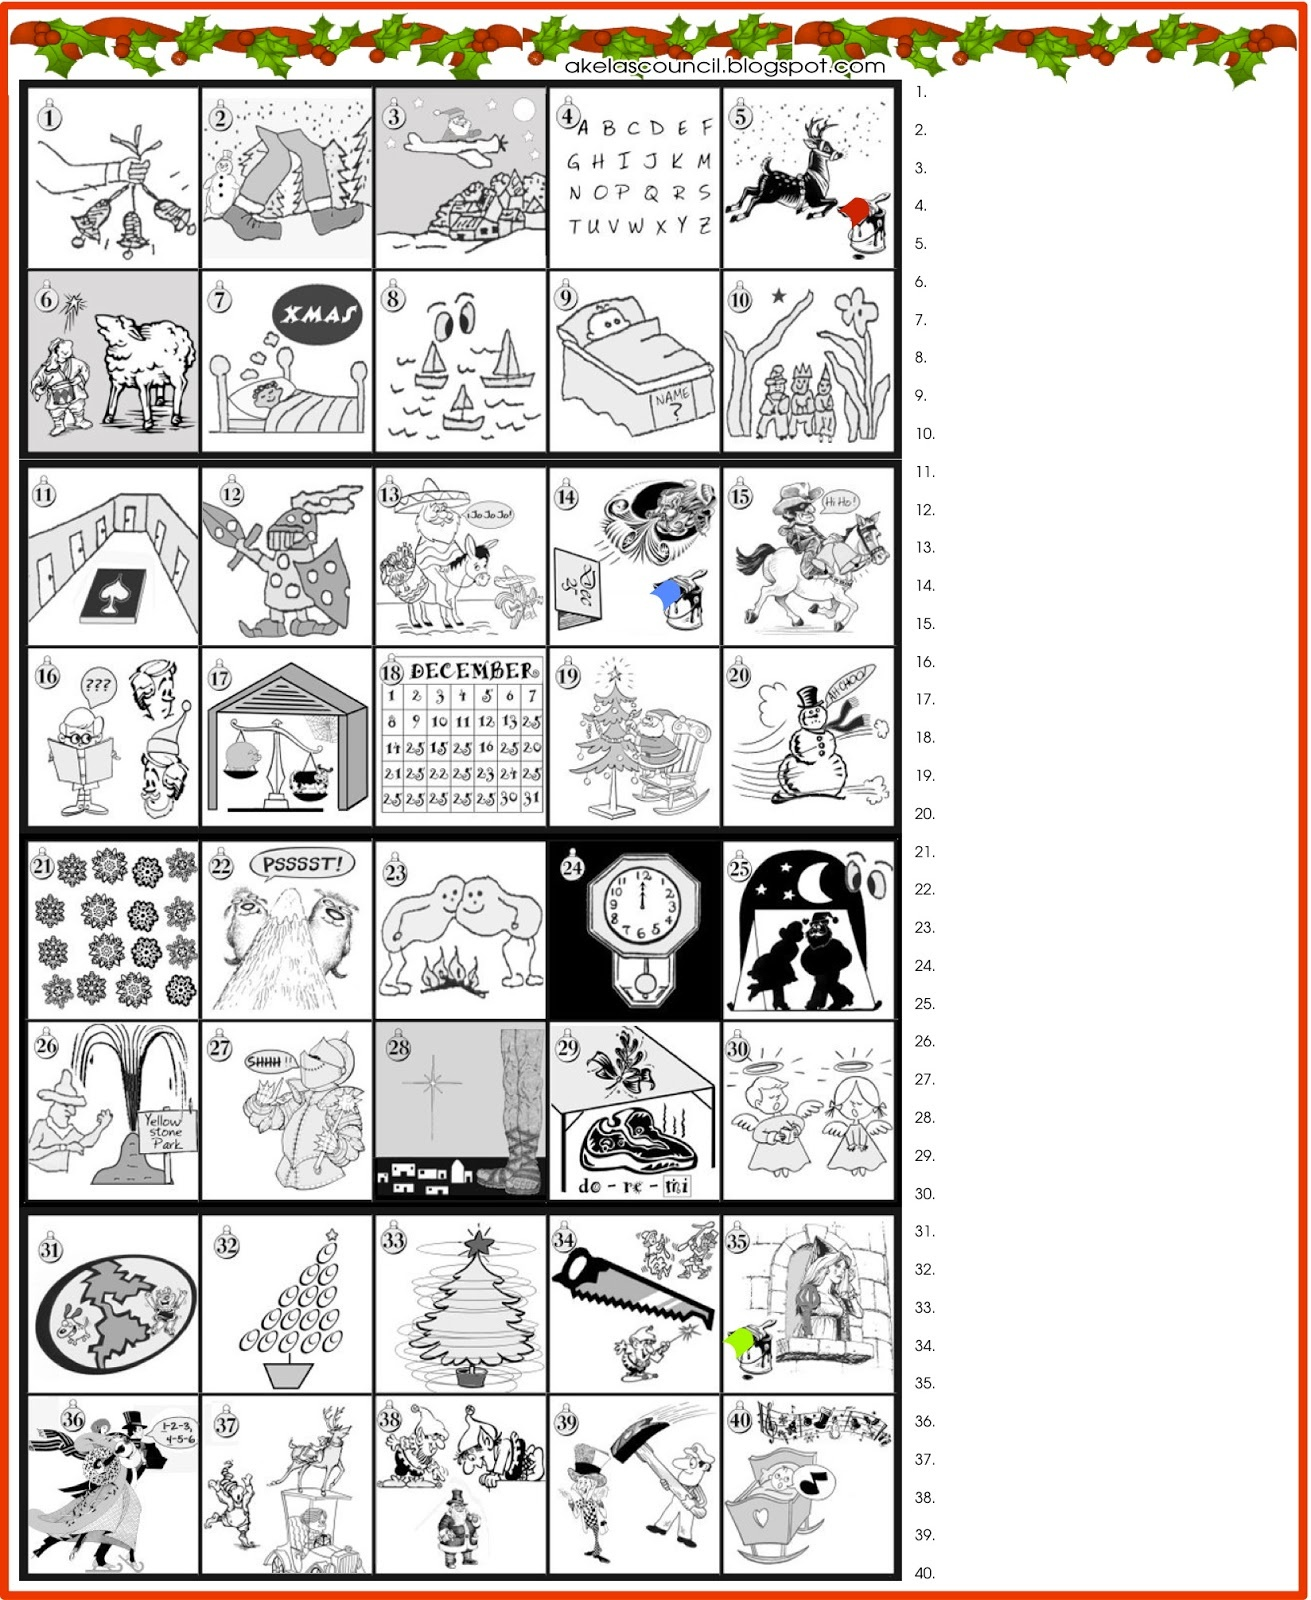 Akela's Council Cub Scout Leader Training: Guess The Christmas Songs - Free Printable Christmas Puzzles